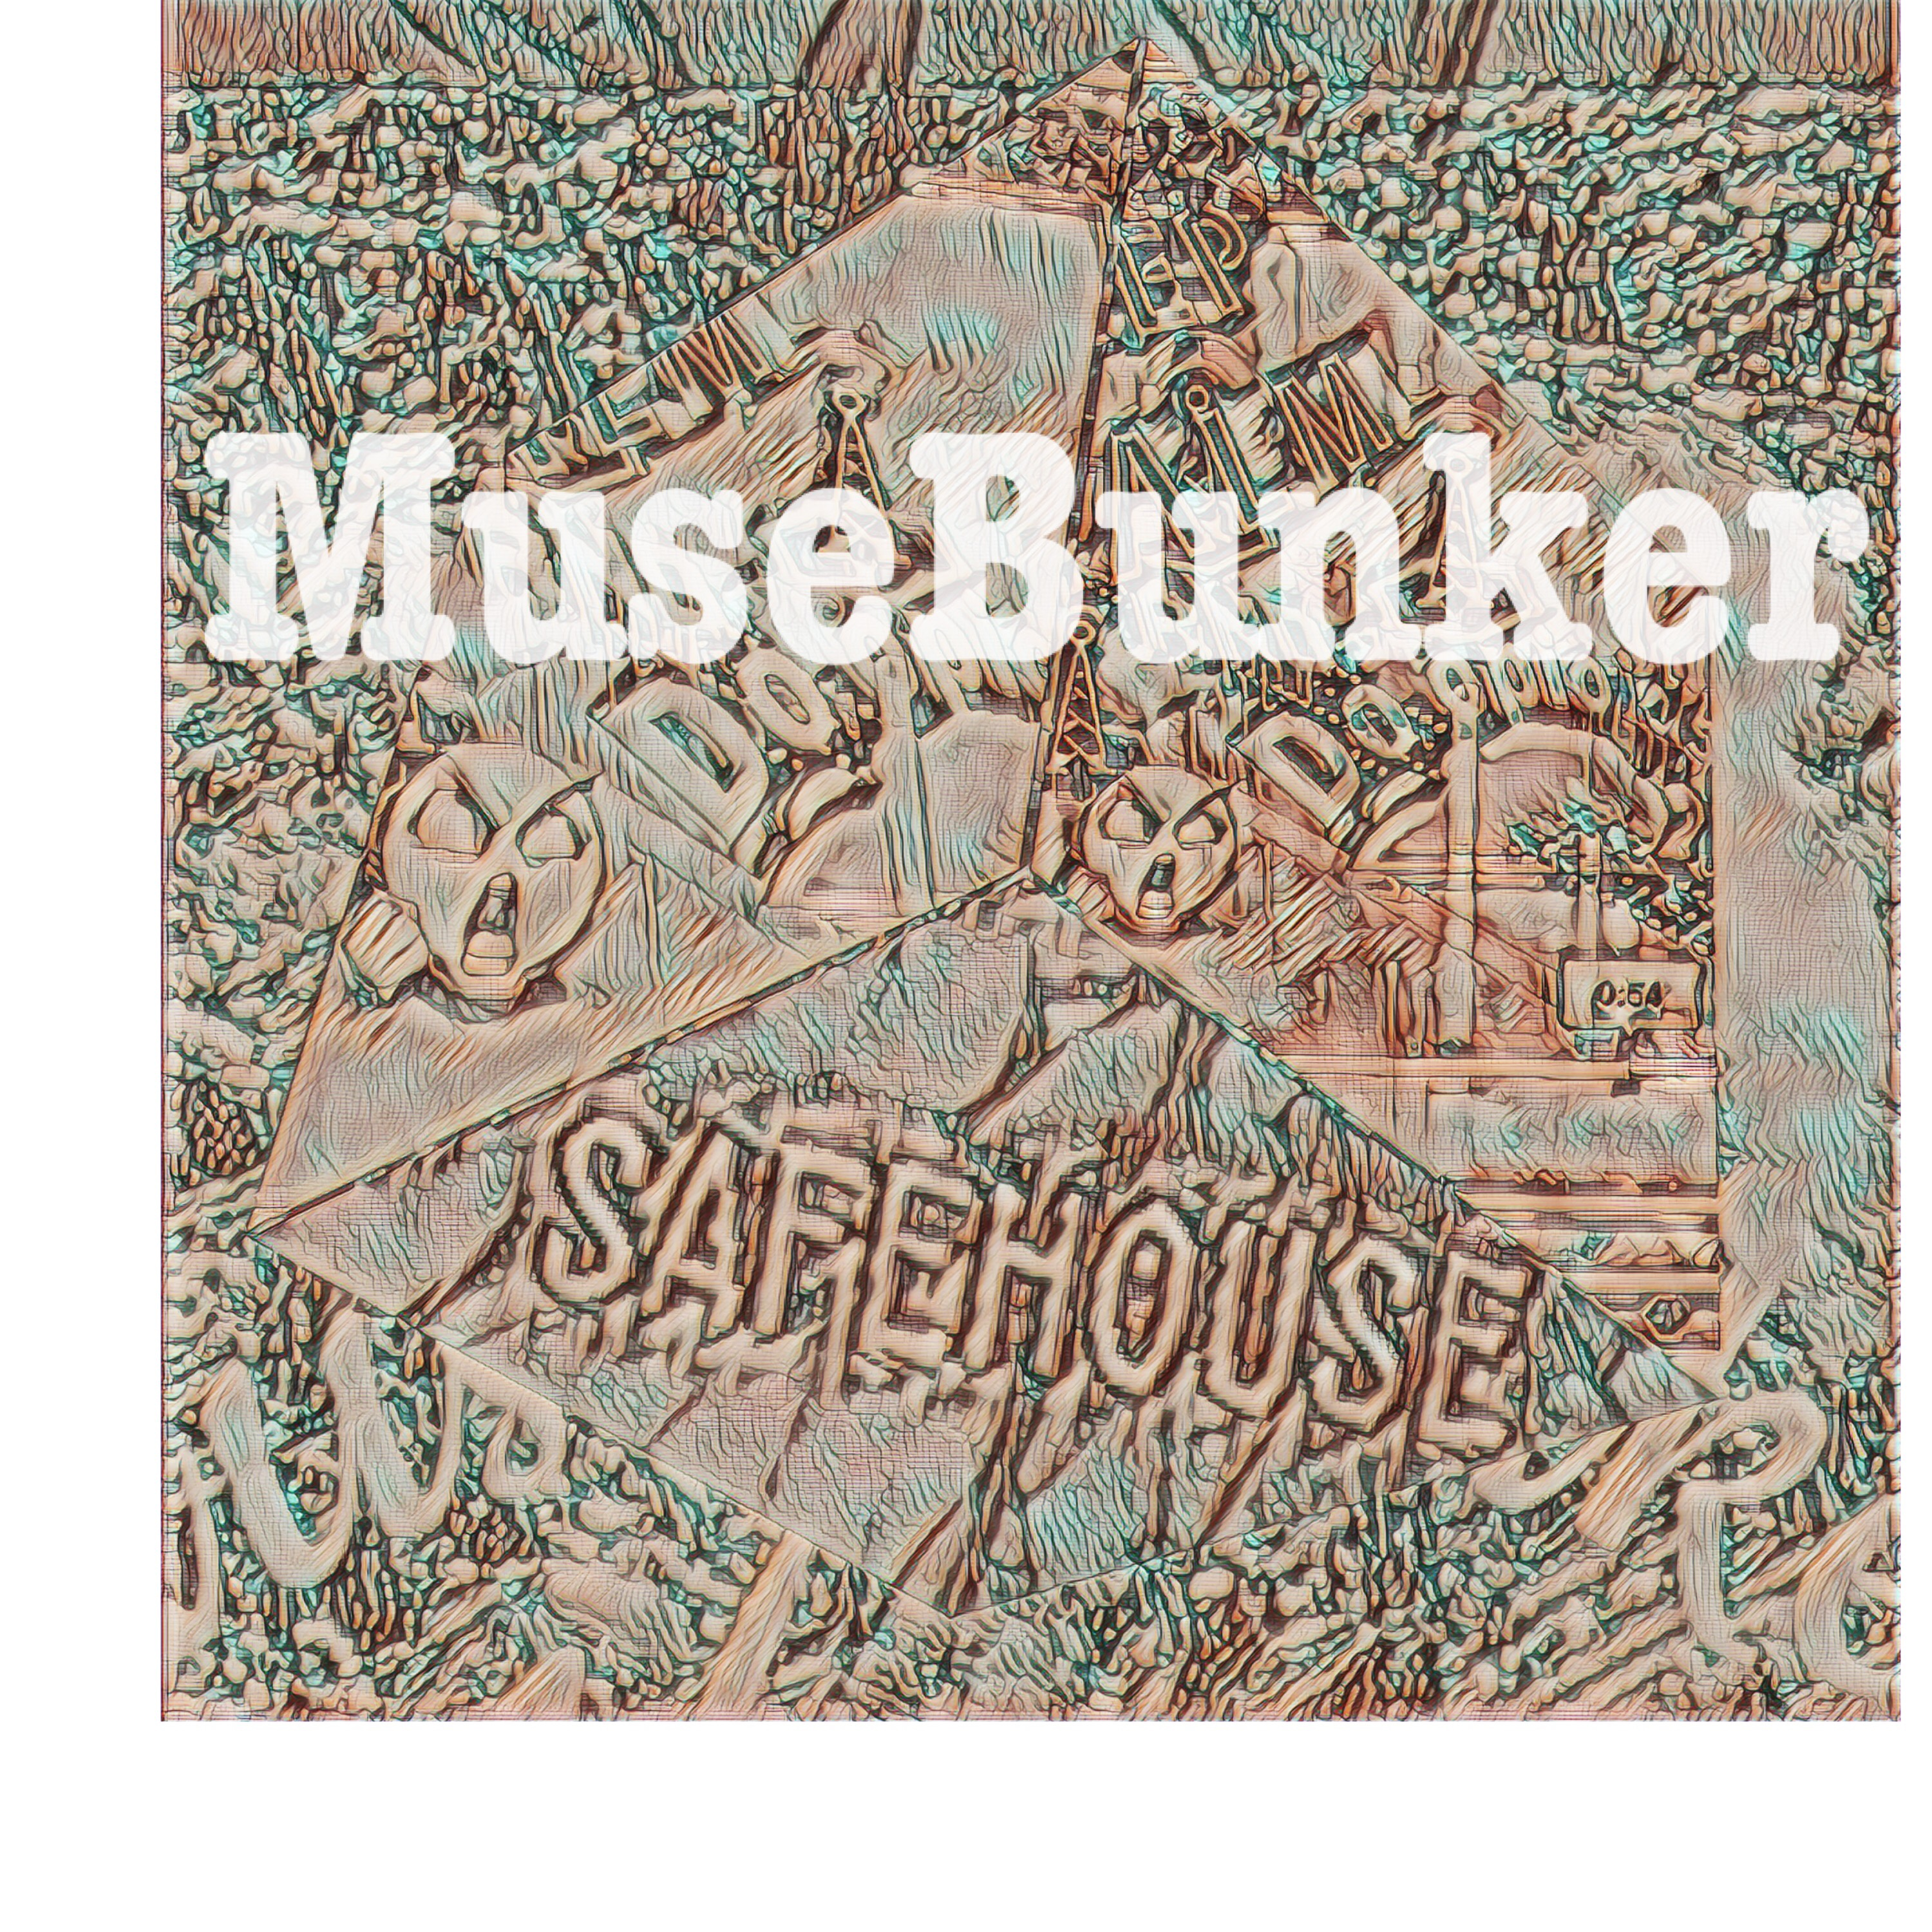 A Safehouse for Muses